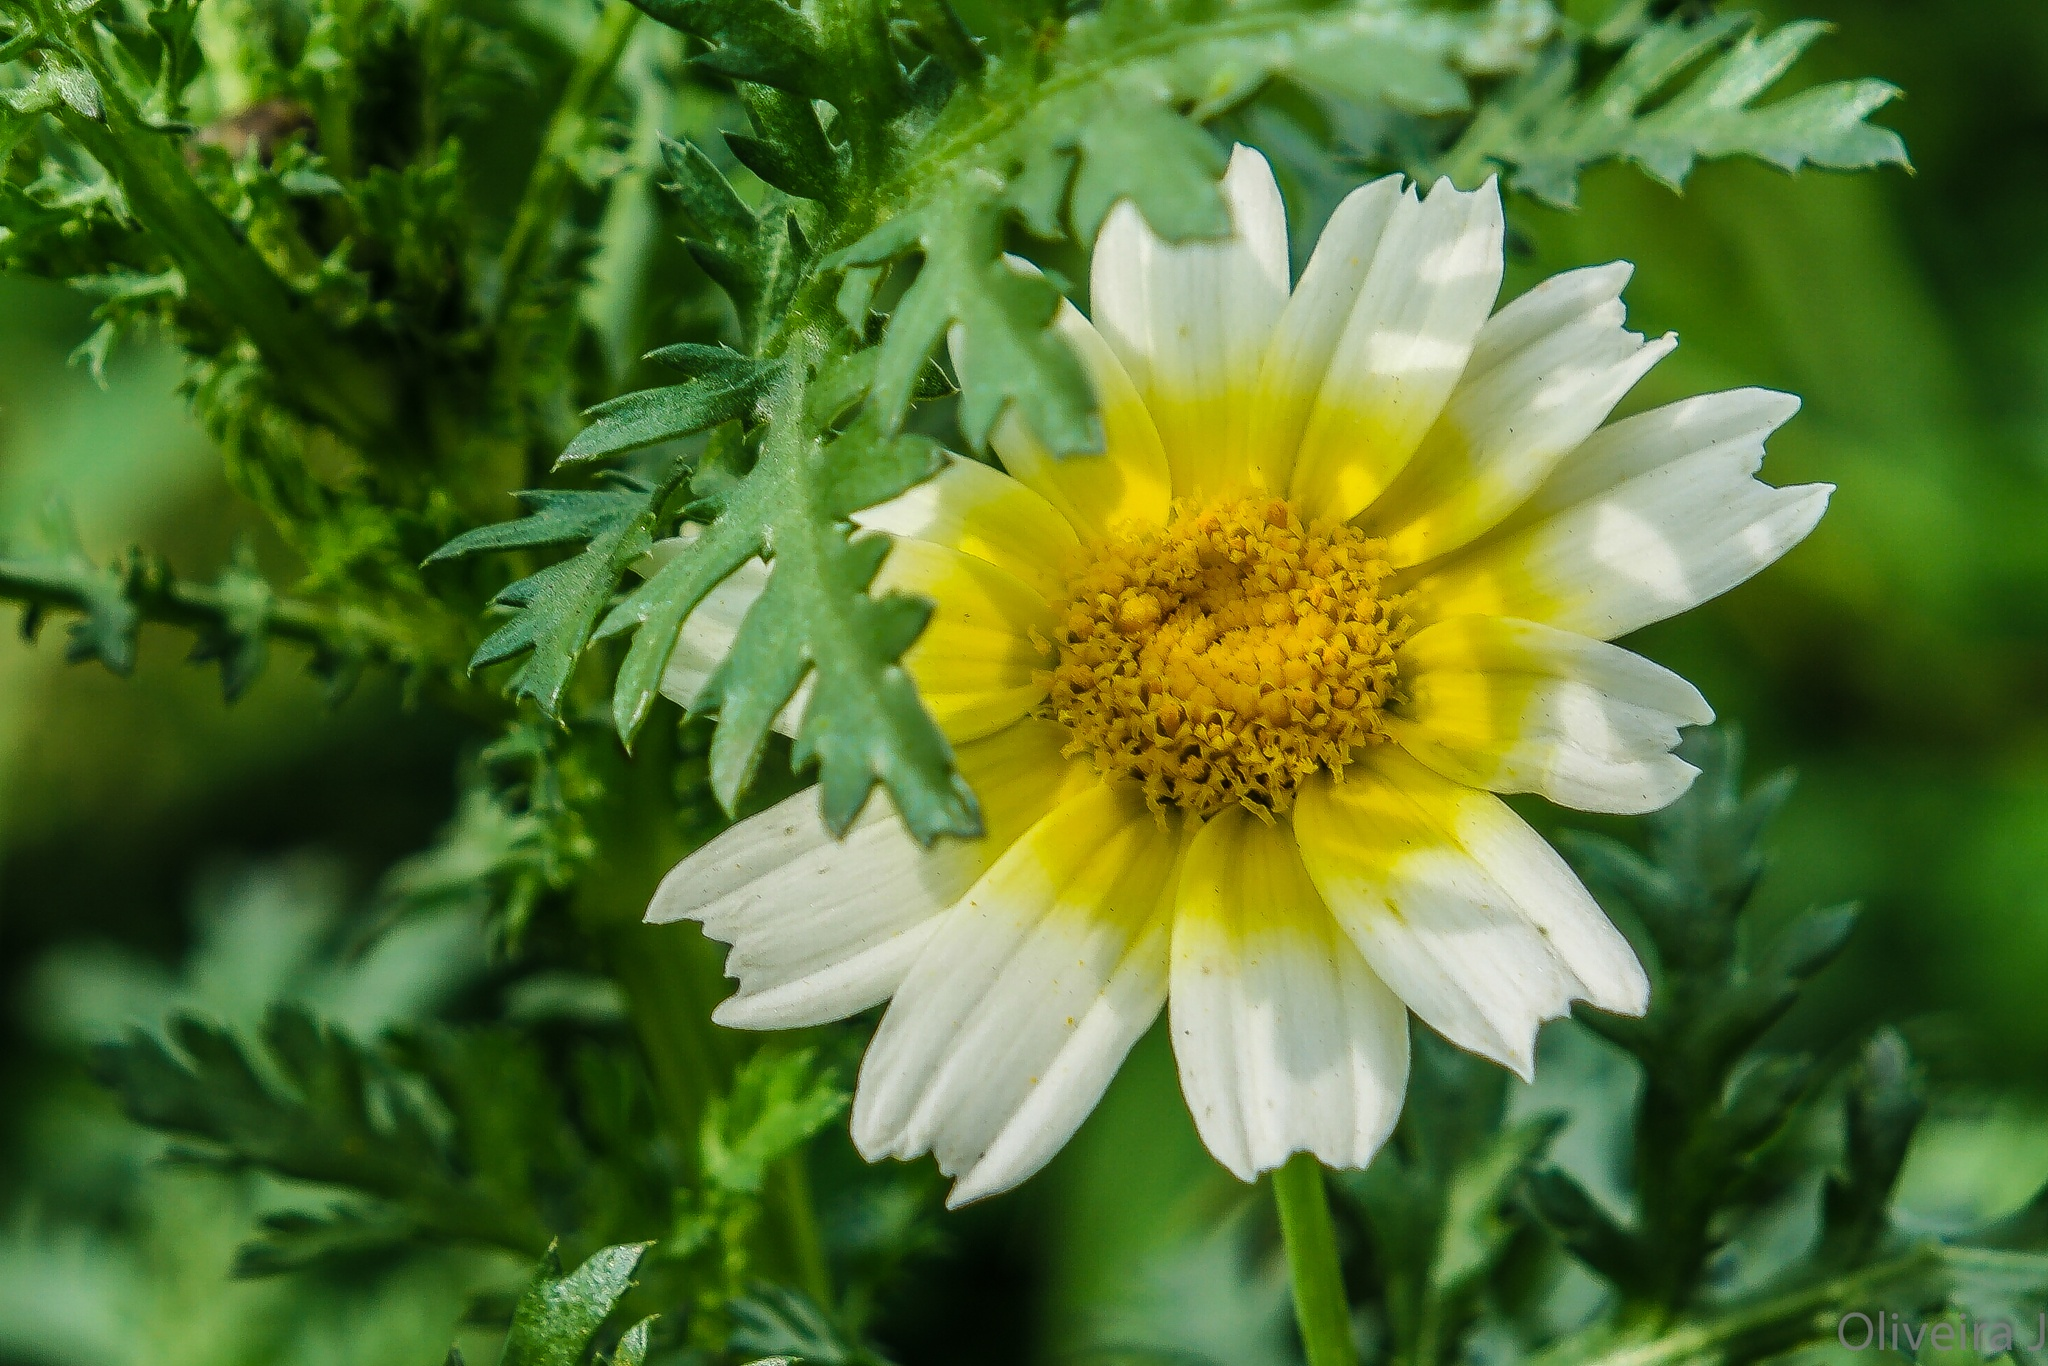 TIMID DAISY by joseoliveira1694